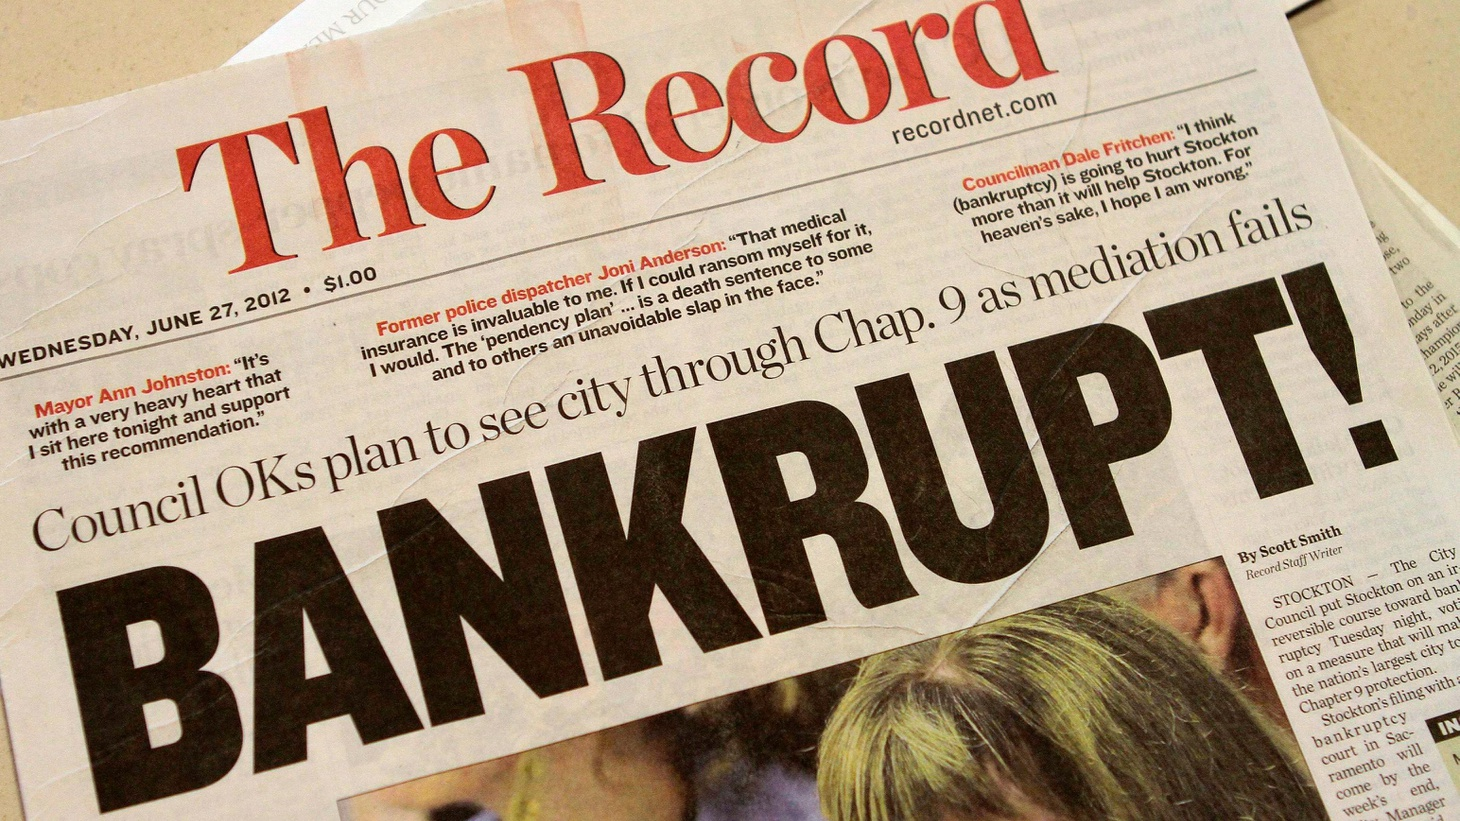 Cities around the US are watching bankruptcy proceedings to see if CalPERS, the state pension system, will have to wait in line with other Stockton creditors.